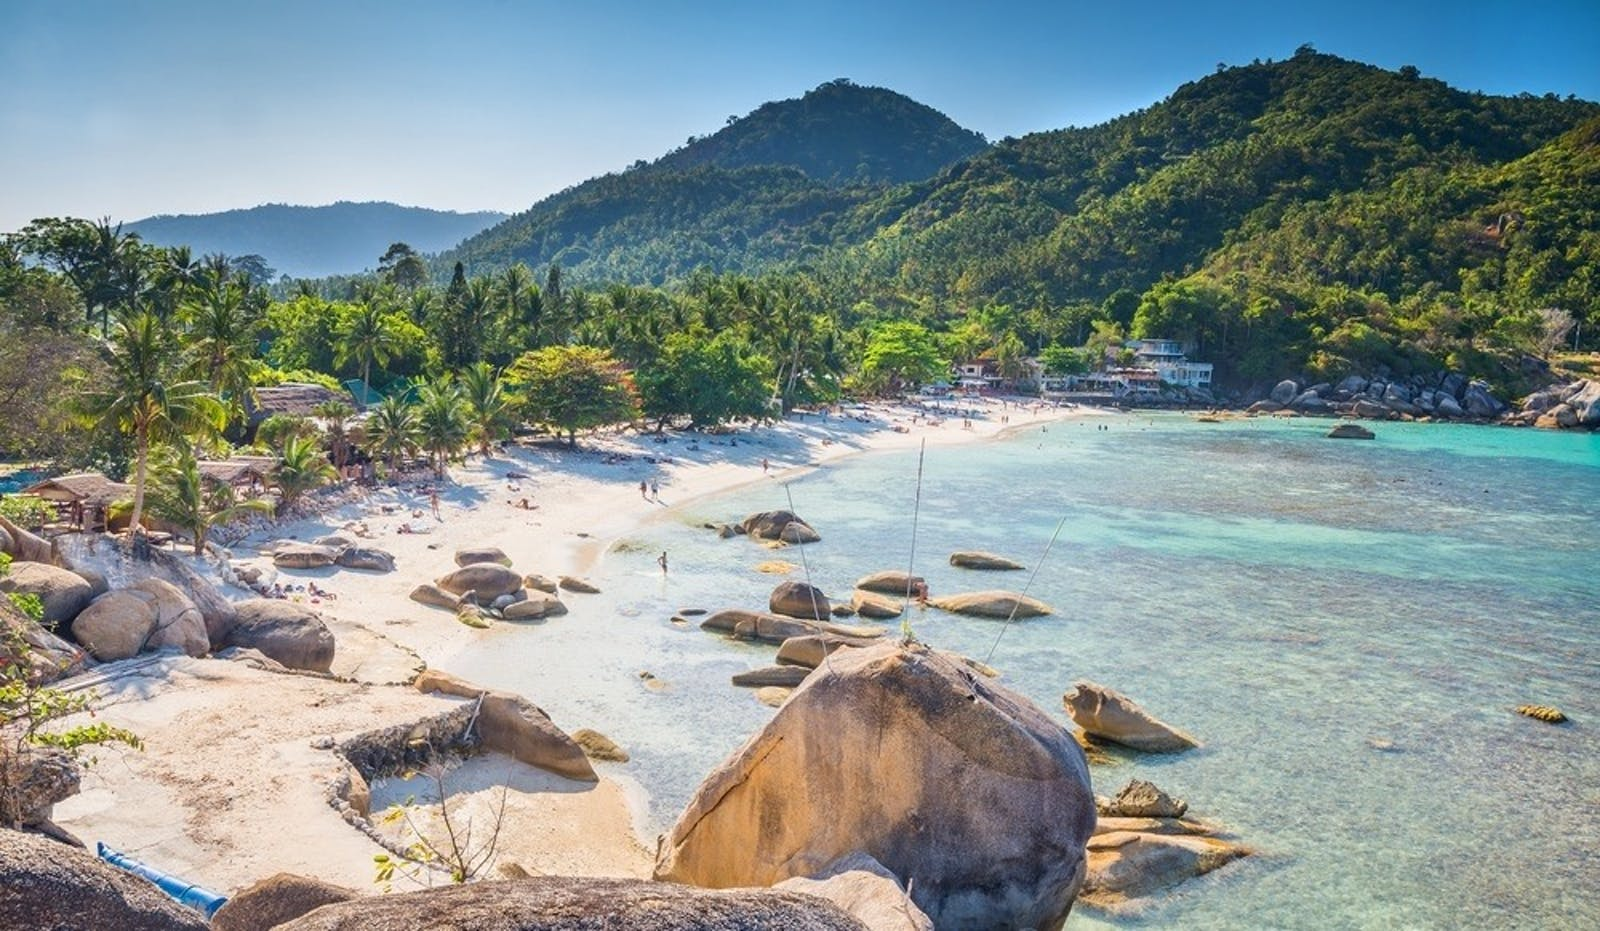 crystal beach beach view at koh samui island thailand